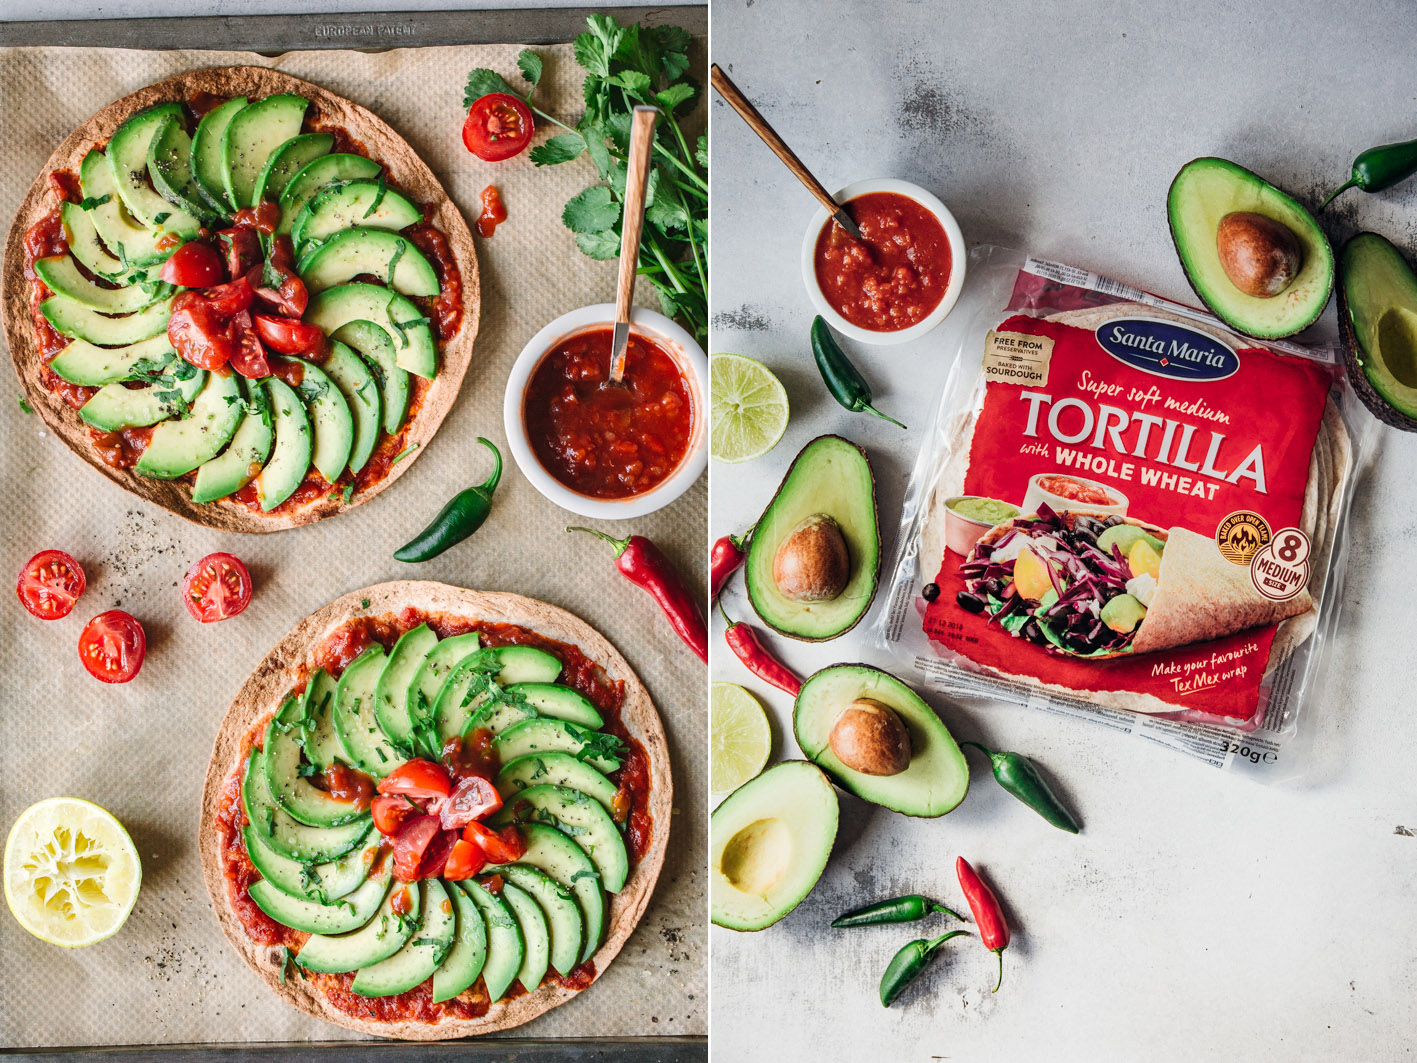 Avocado-Tortilla Pizza